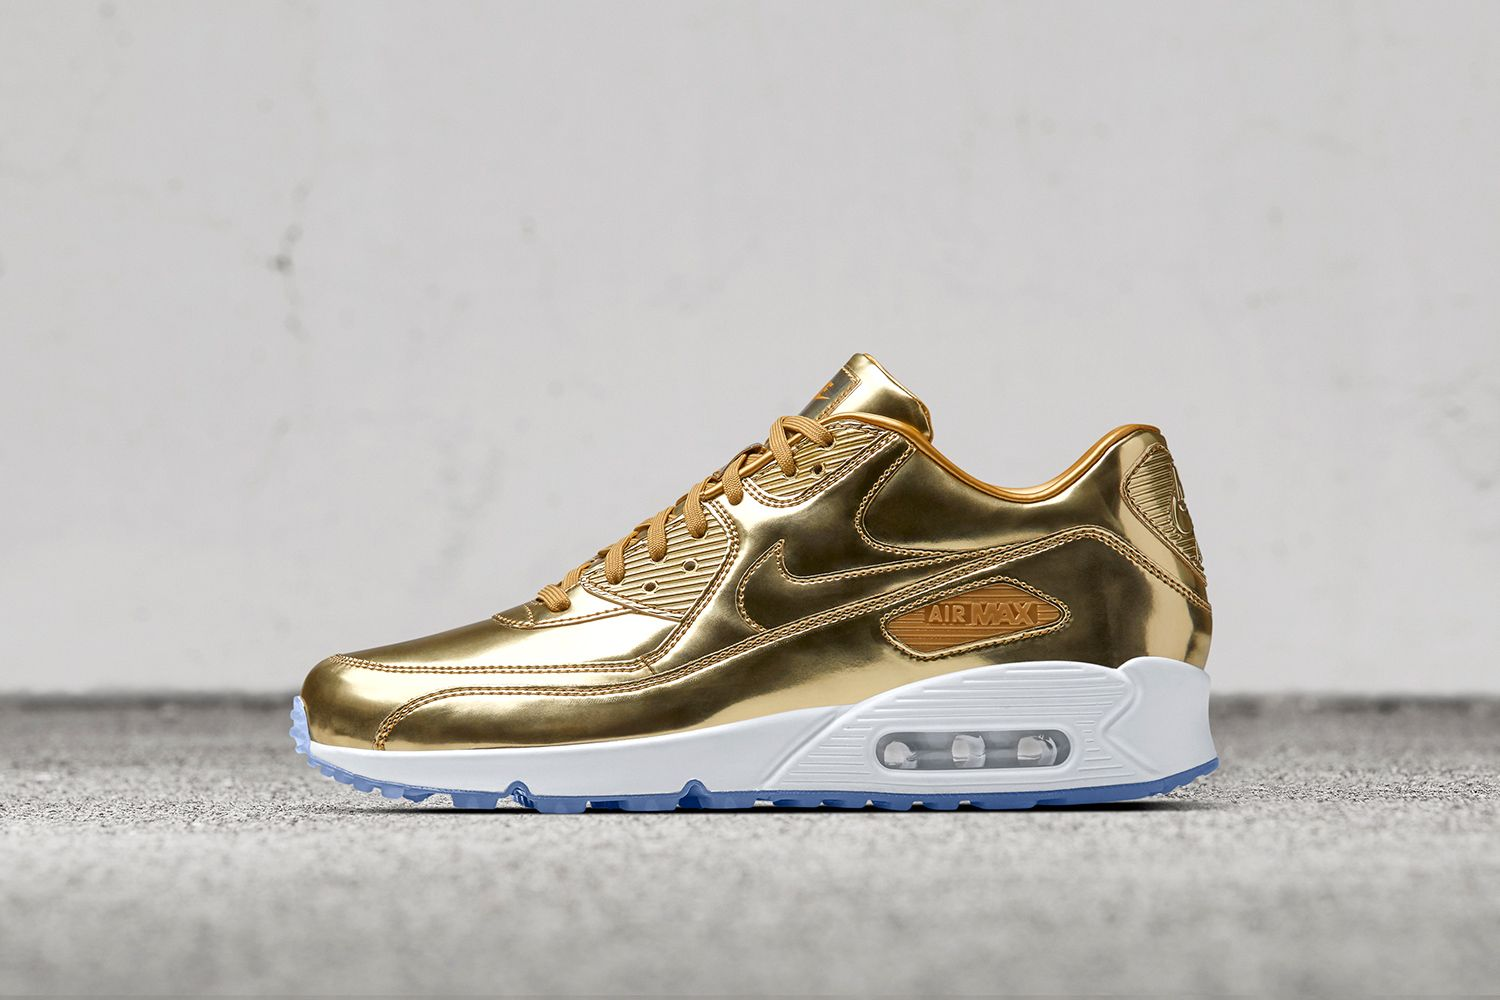 the best attitude 7bb38 b7f3a Deck out the Air Force 1 and Air Max 90 in metallic gold, silver and bronze  medal options in honor of the Rio Olympics.